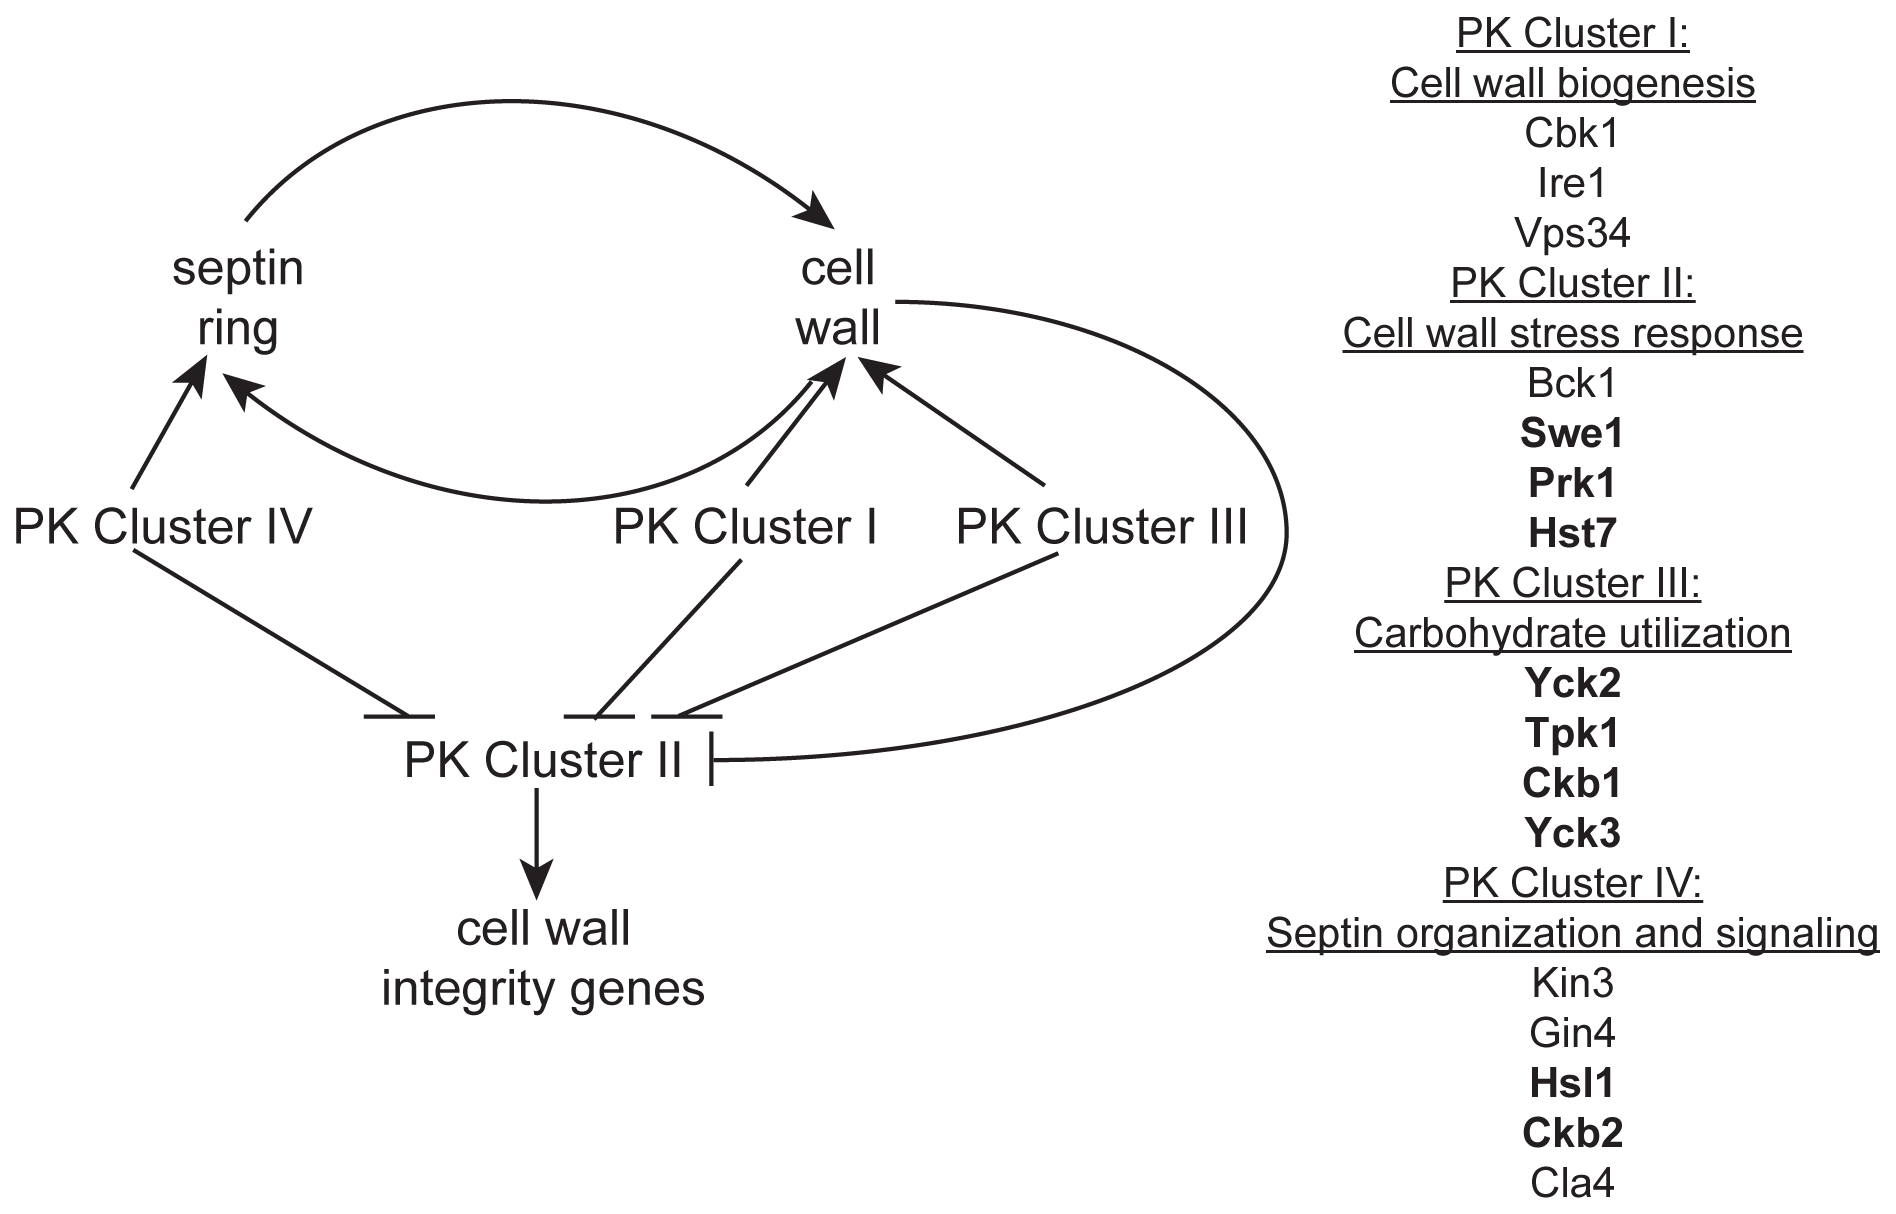 A model of the role of PKs in septin morphology and cell wall biogenesis.